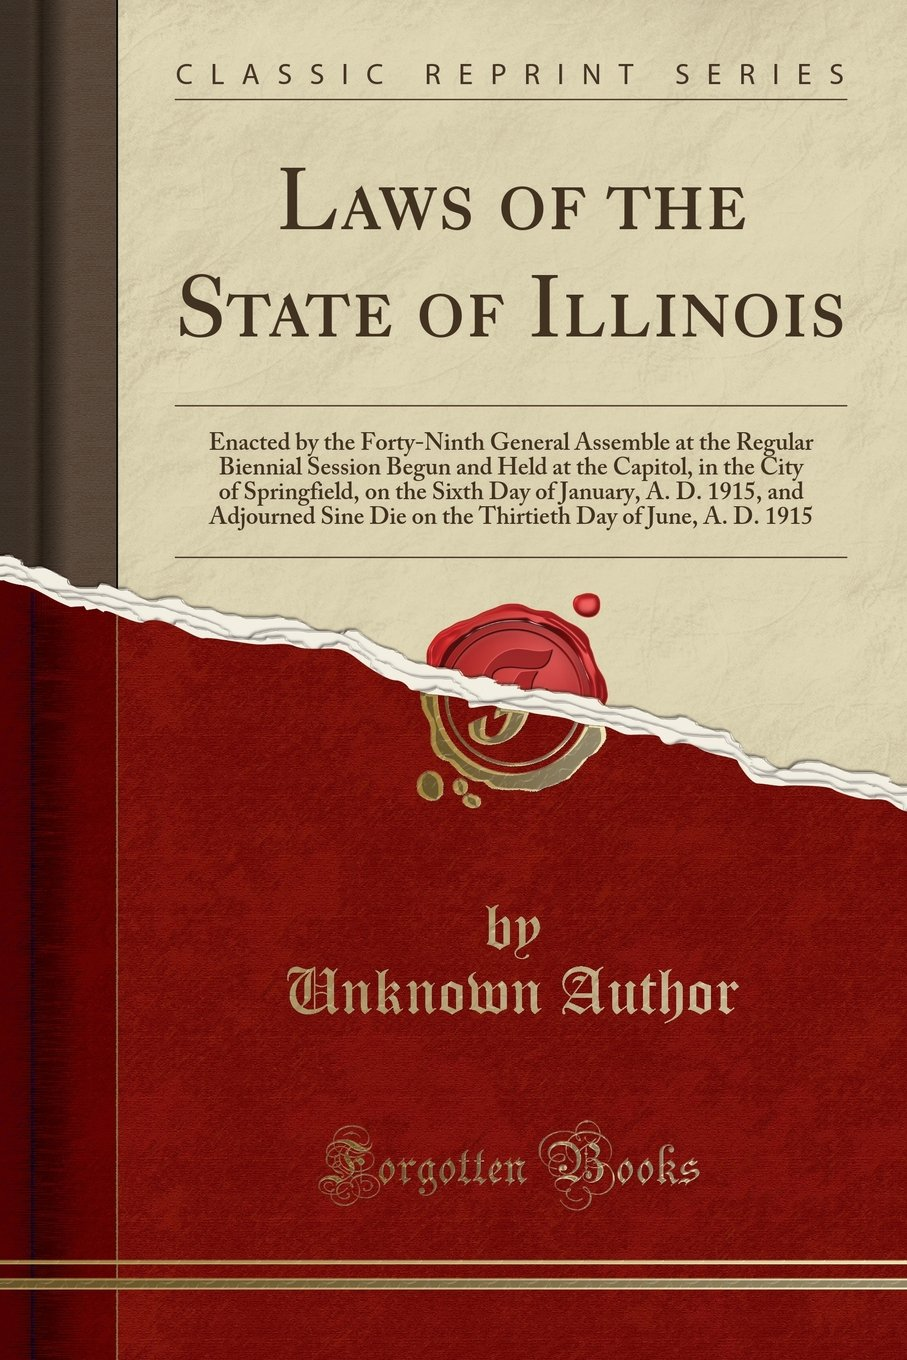 Download Laws of the State of Illinois: Enacted by the Forty-Ninth General Assemble at the Regular Biennial Session Begun and Held at the Capitol, in the City ... Adjourned Sine Die on the Thirtieth Day of J pdf epub